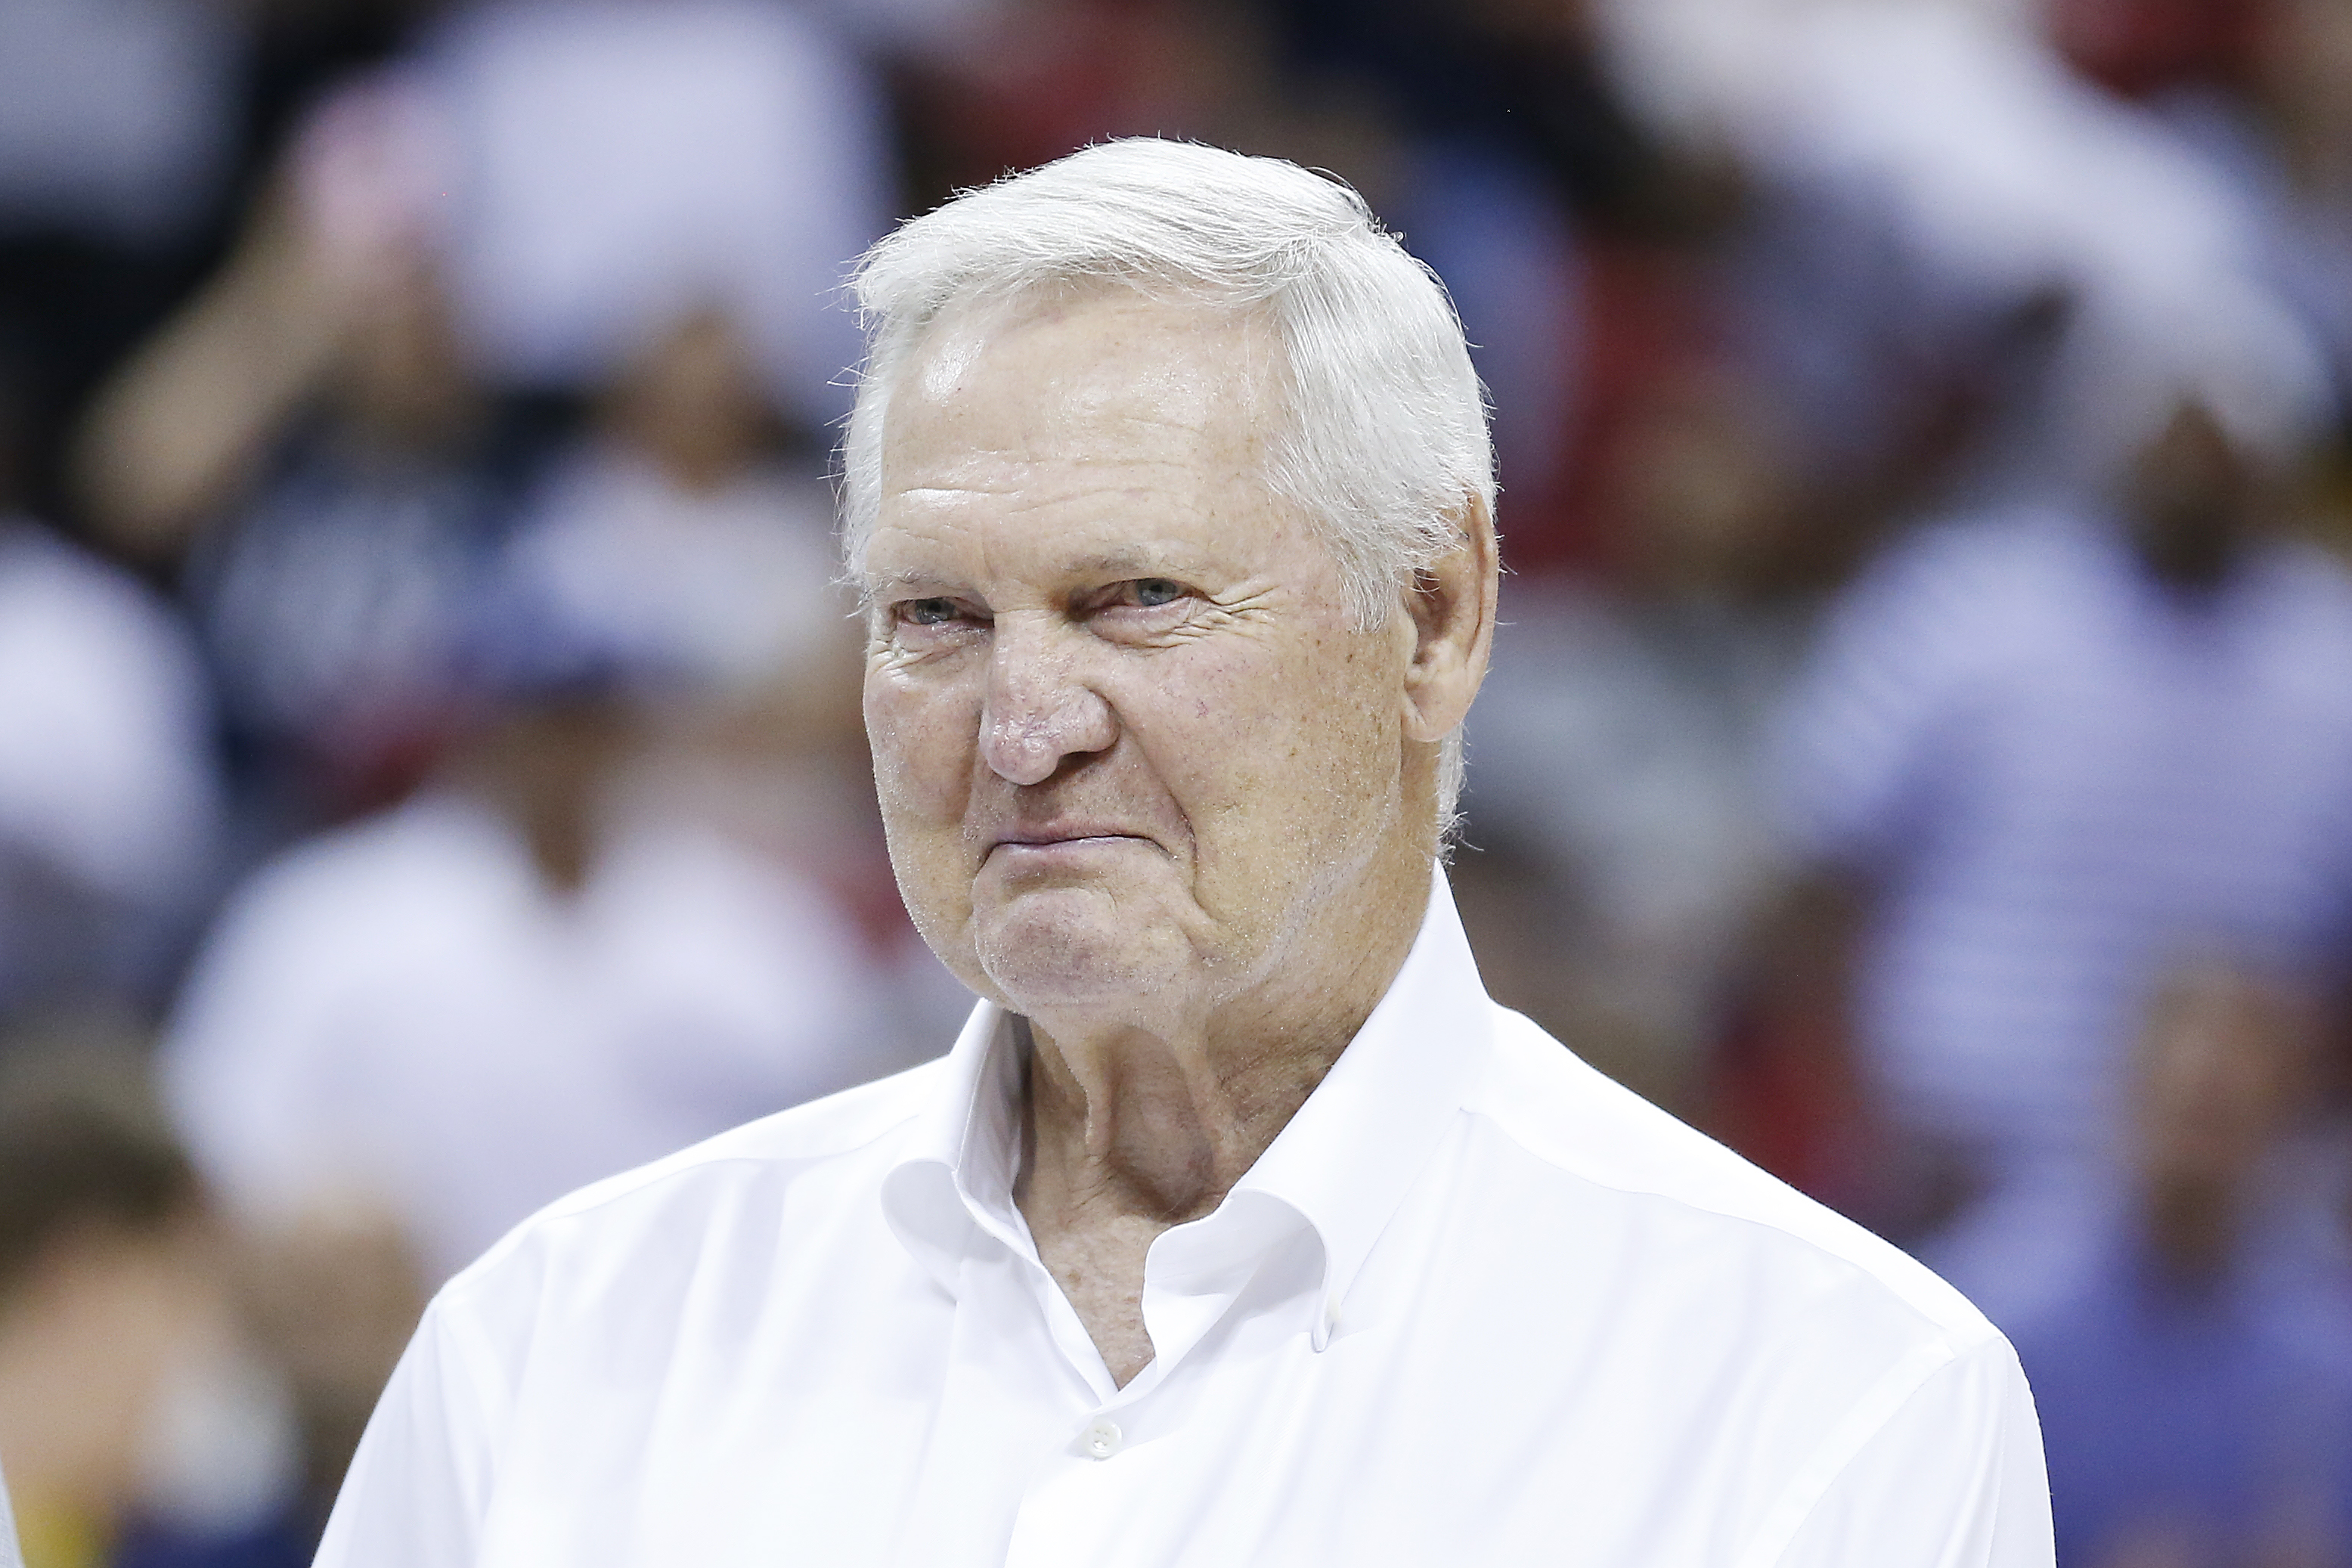 Believe Jerry West on who deserves credit for the Clippers' coup